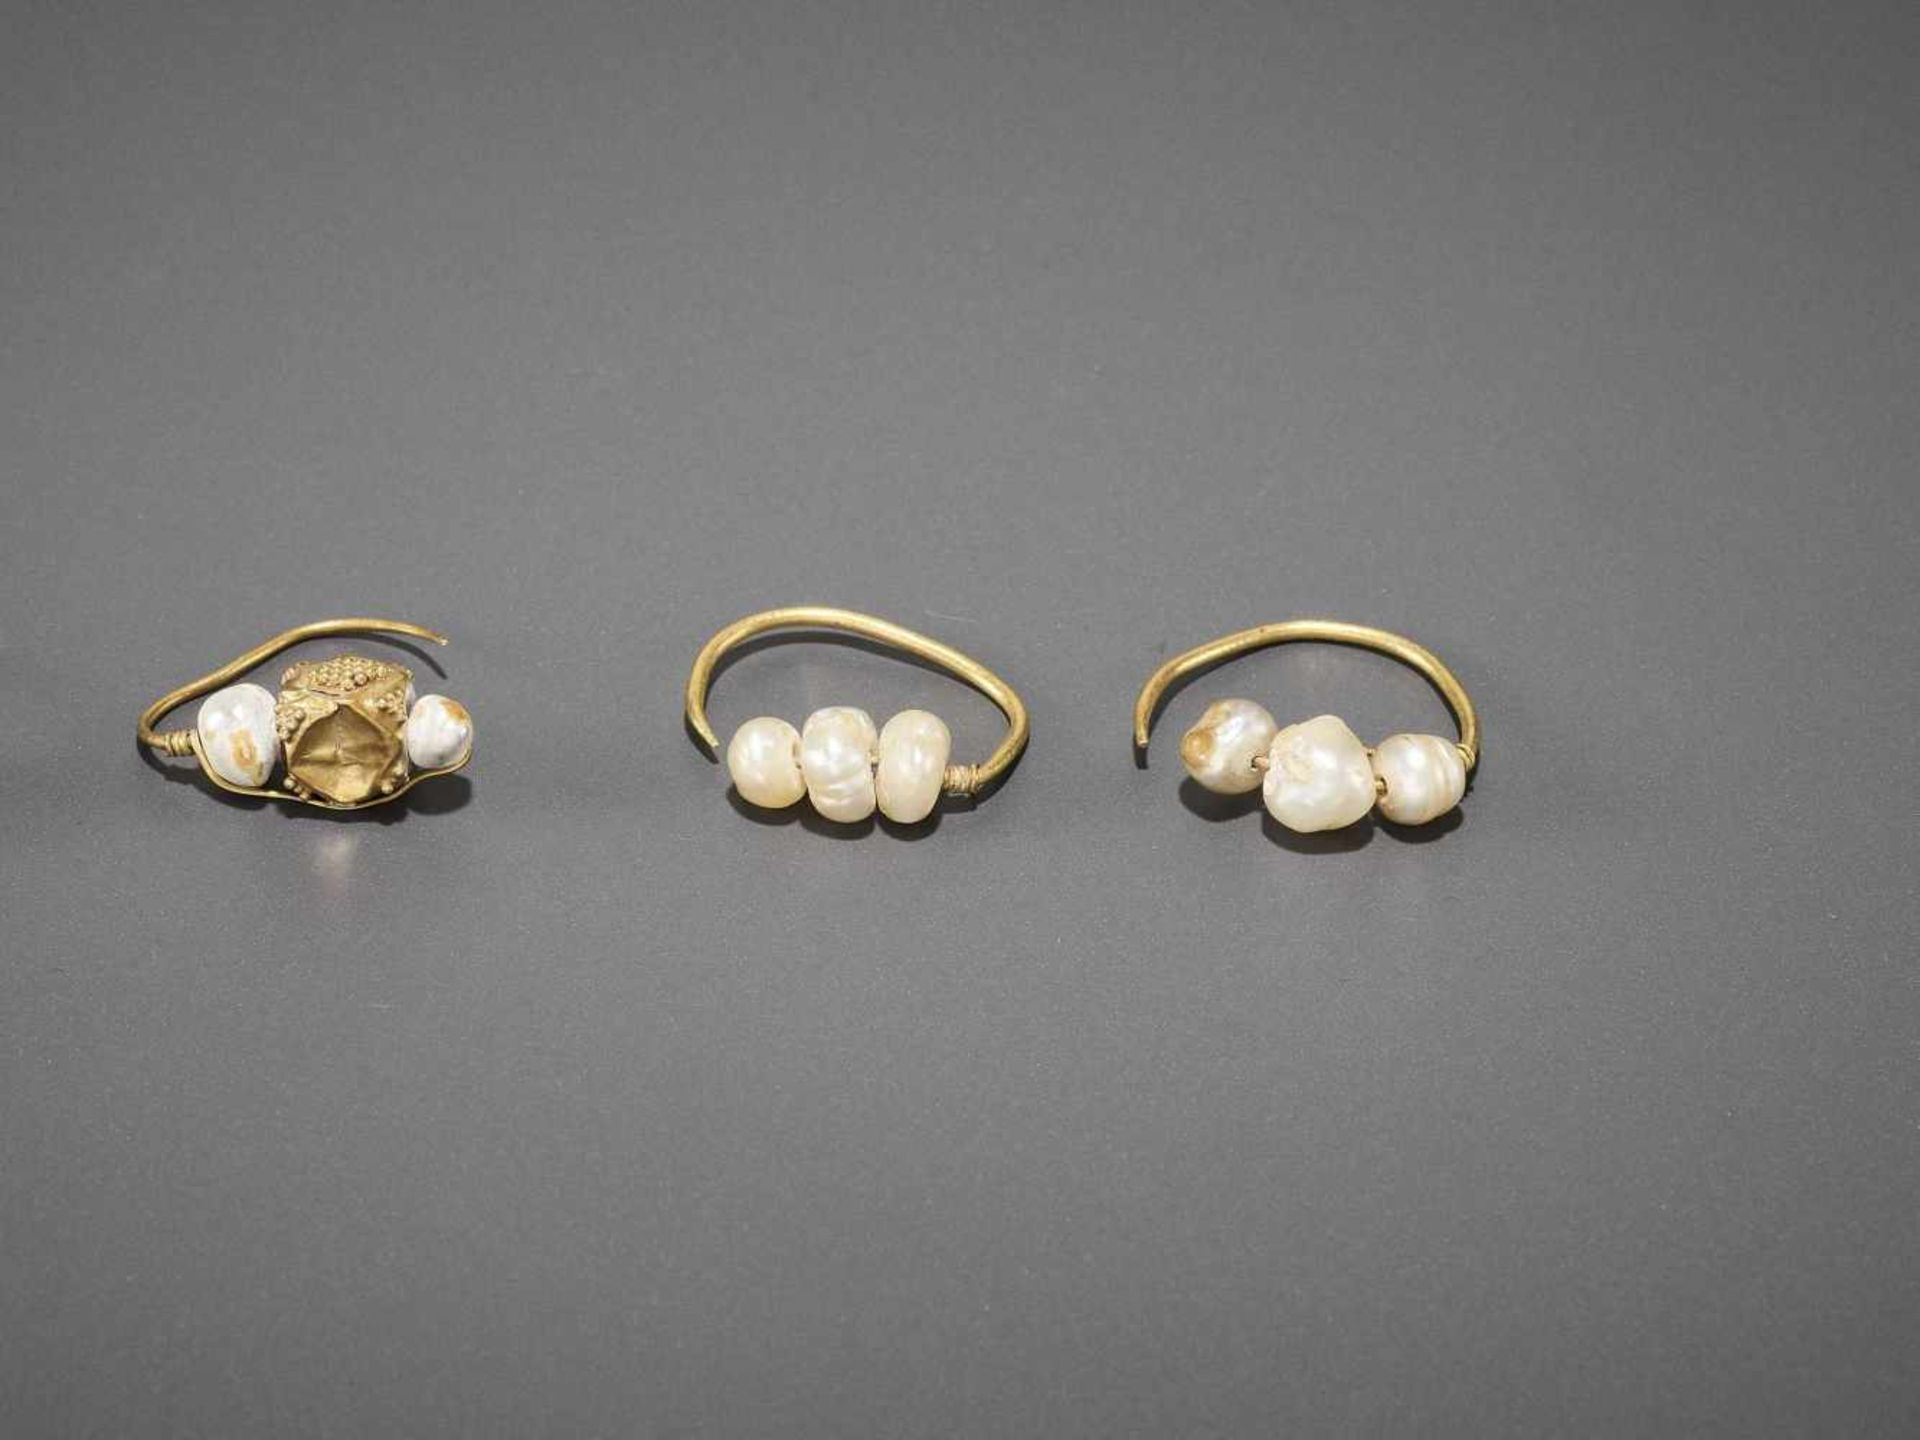 FIVE BACTRIAN GOLD EARRINGS WITH PEARLS AND GEMSTONES - Bild 4 aus 5